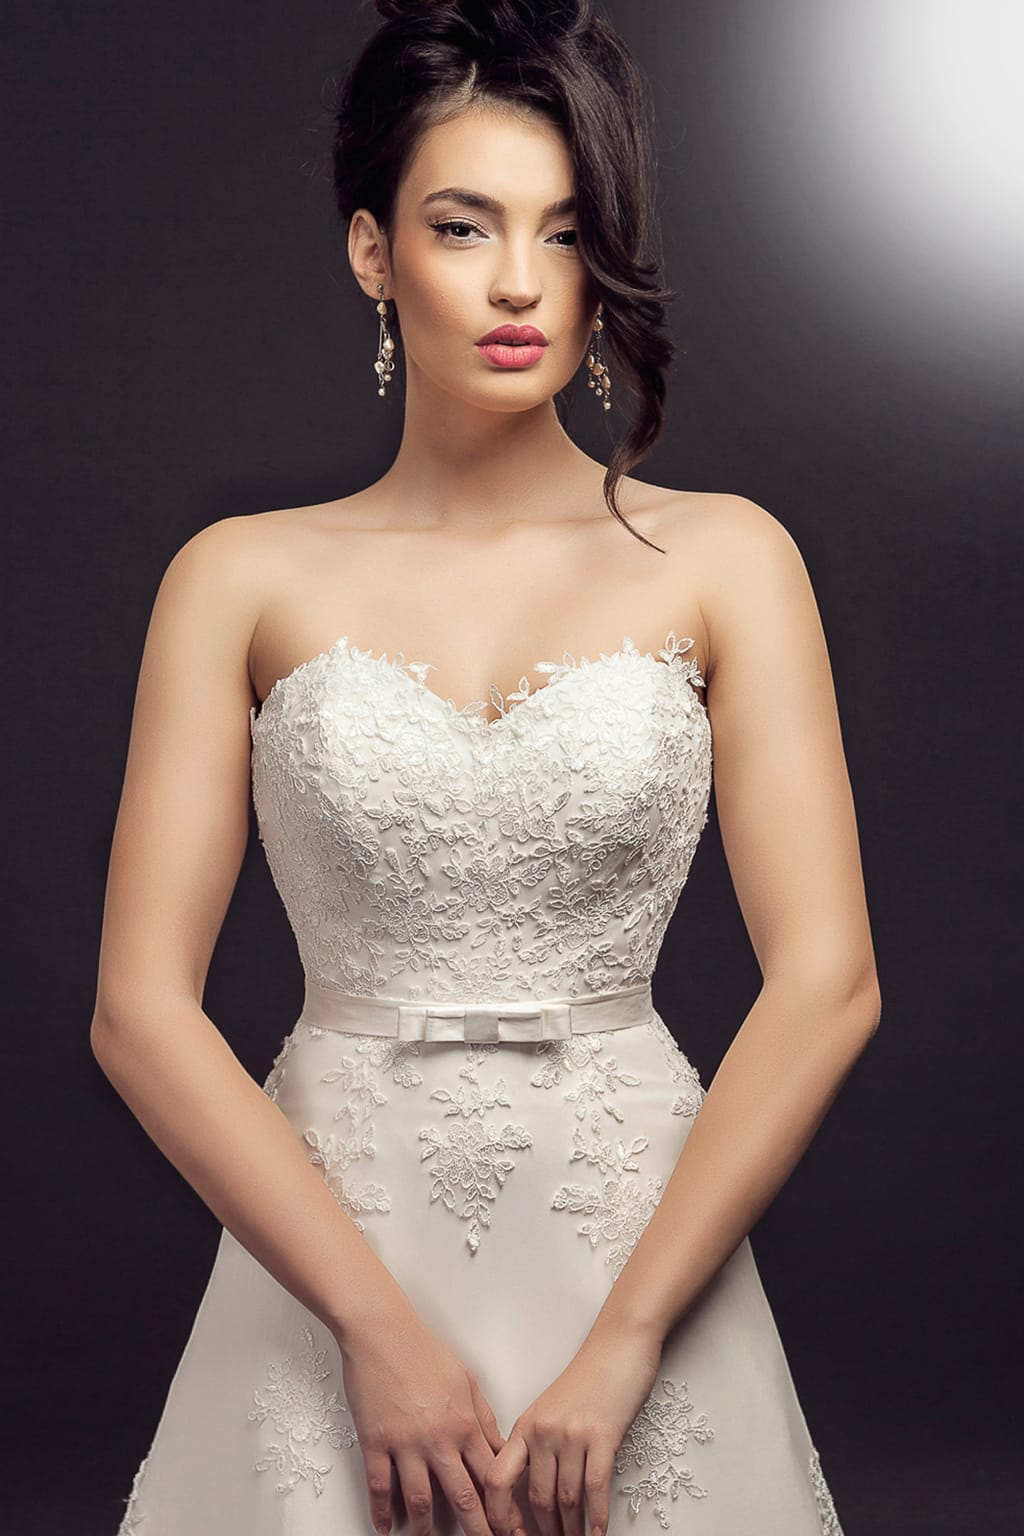 Paccia Model - Colectia Dreams - Adora Sposa (3)